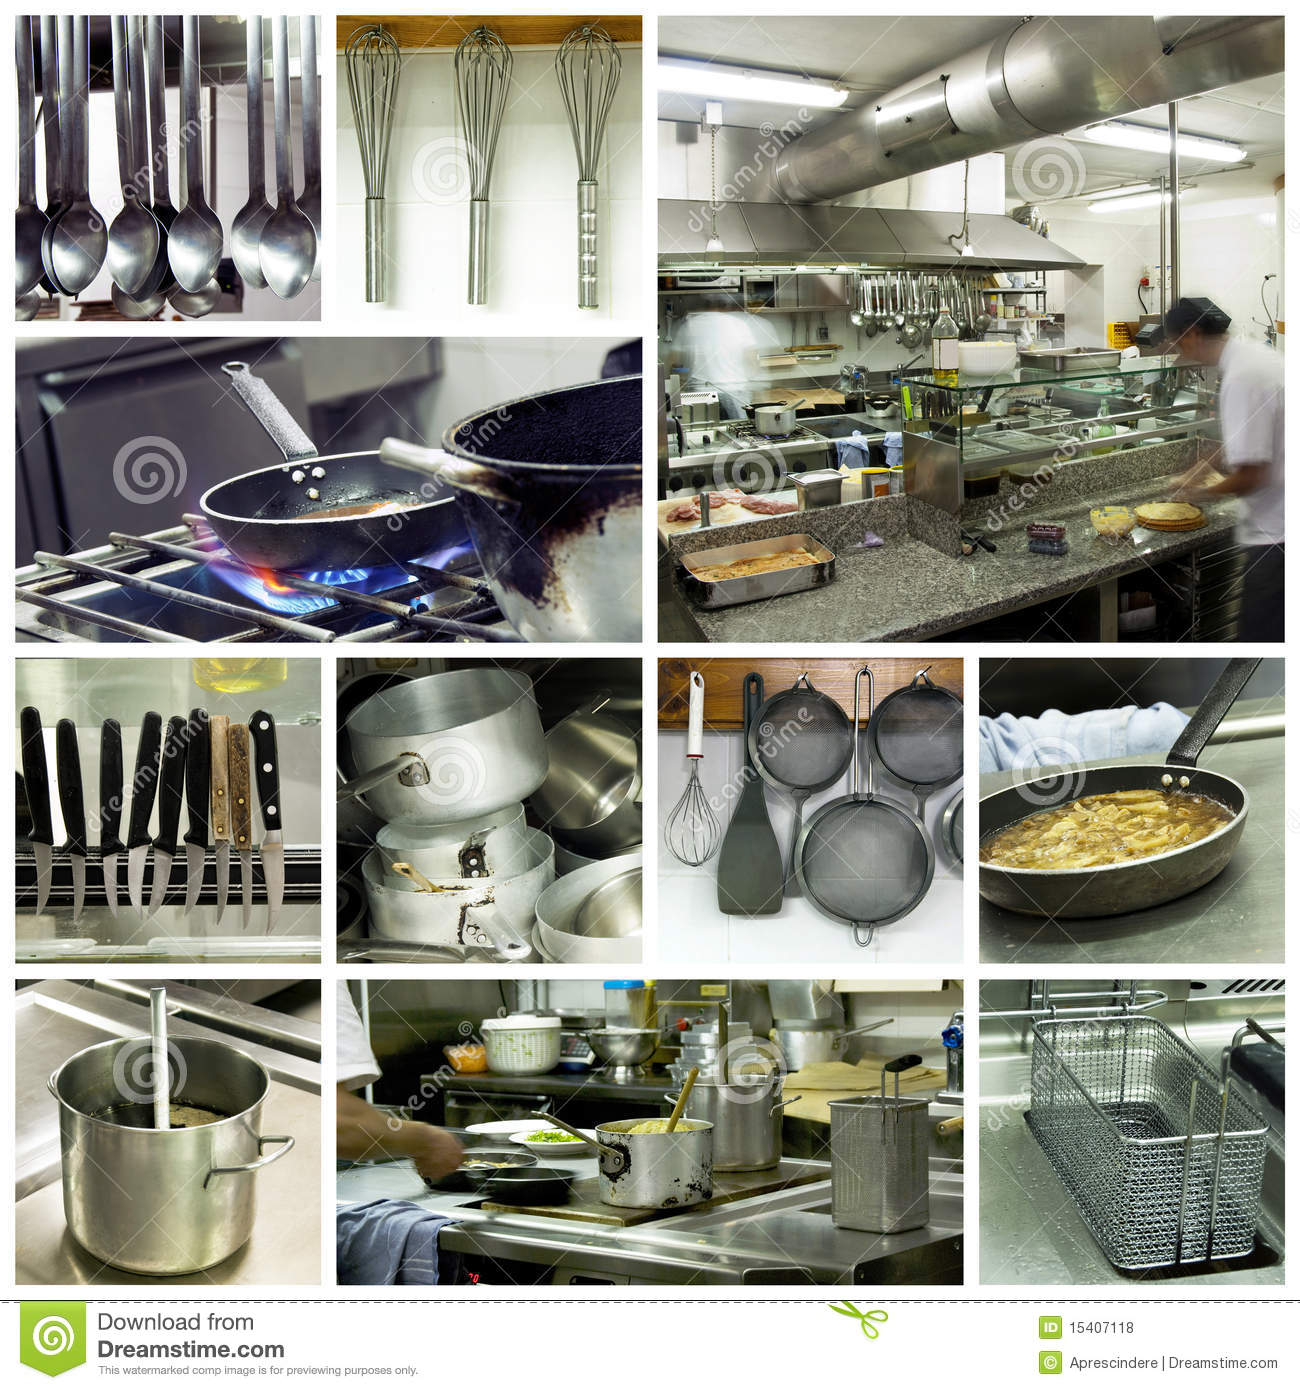 Hotel Kitchen Collage Stock Photo. Image Of Aroma, Dishes